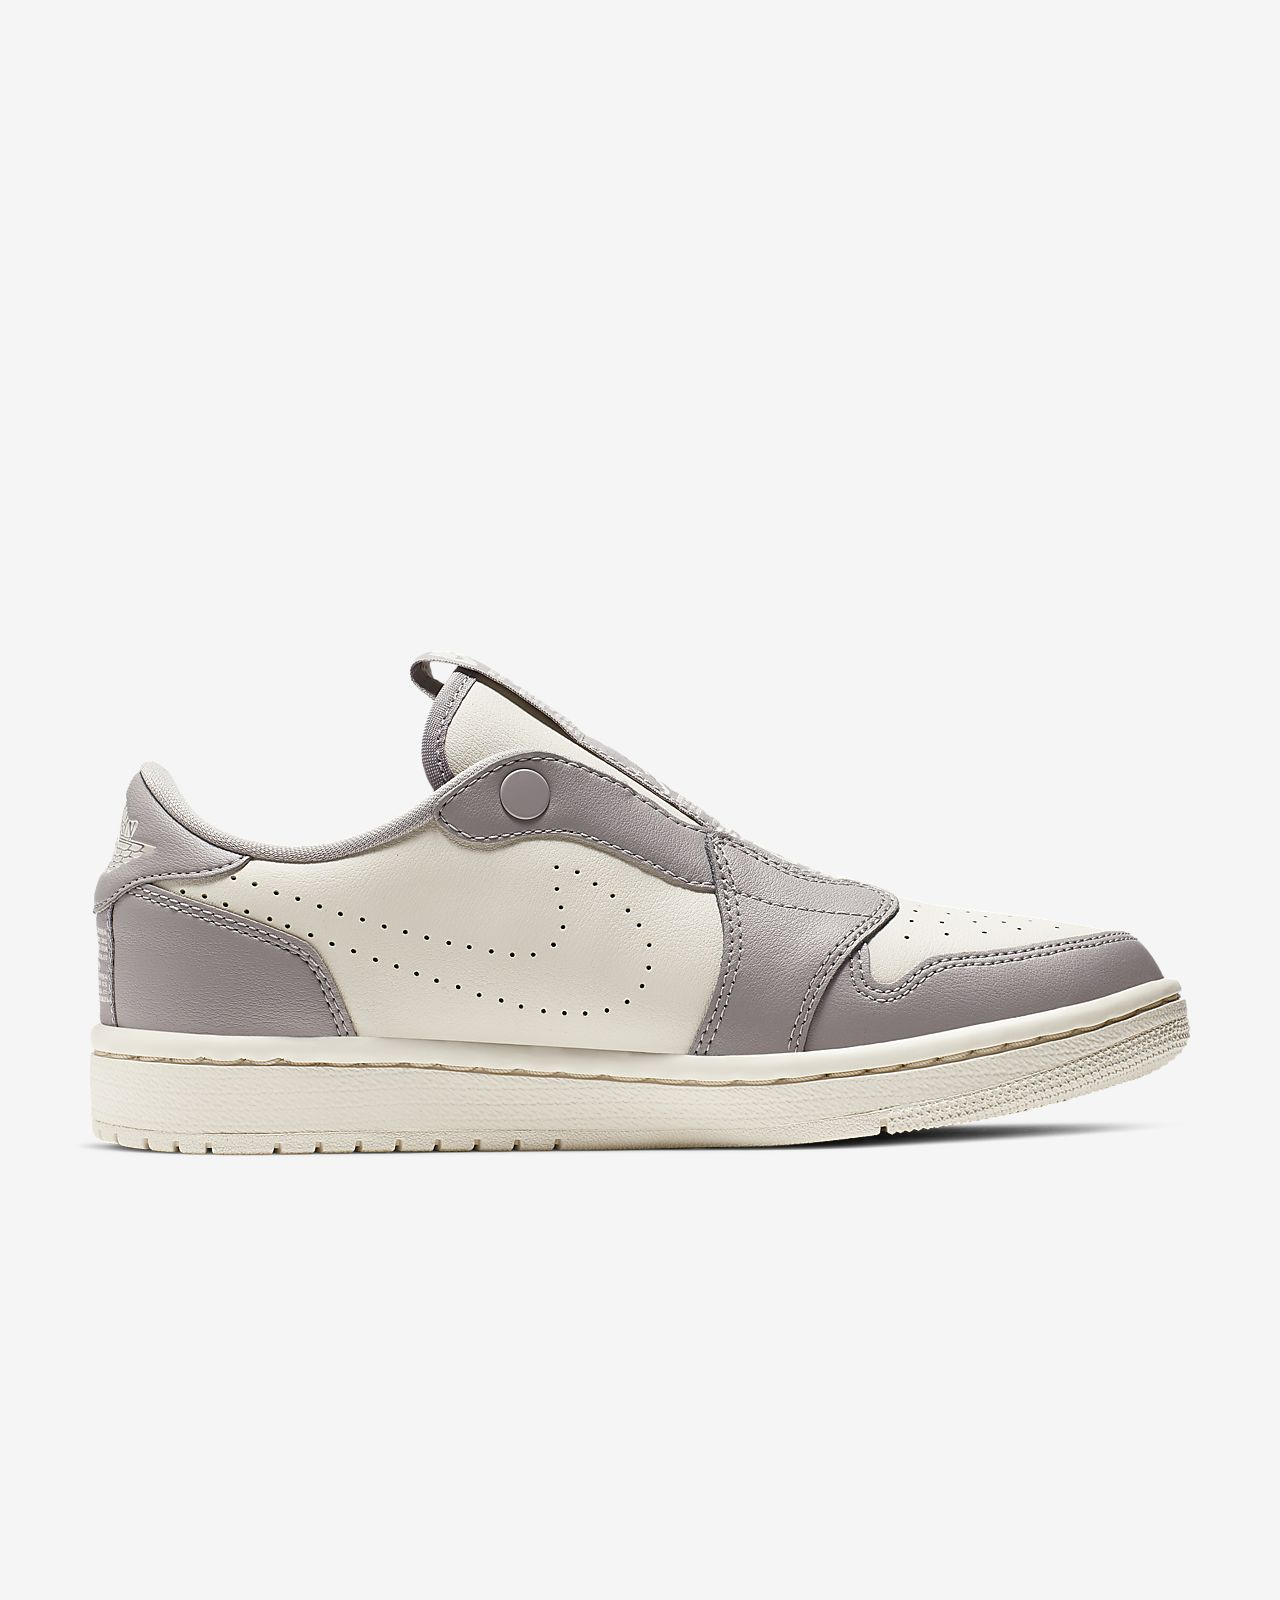 buy online 682ff d6cca ... Air Jordan 1 Retro Low Slip Women s Shoe